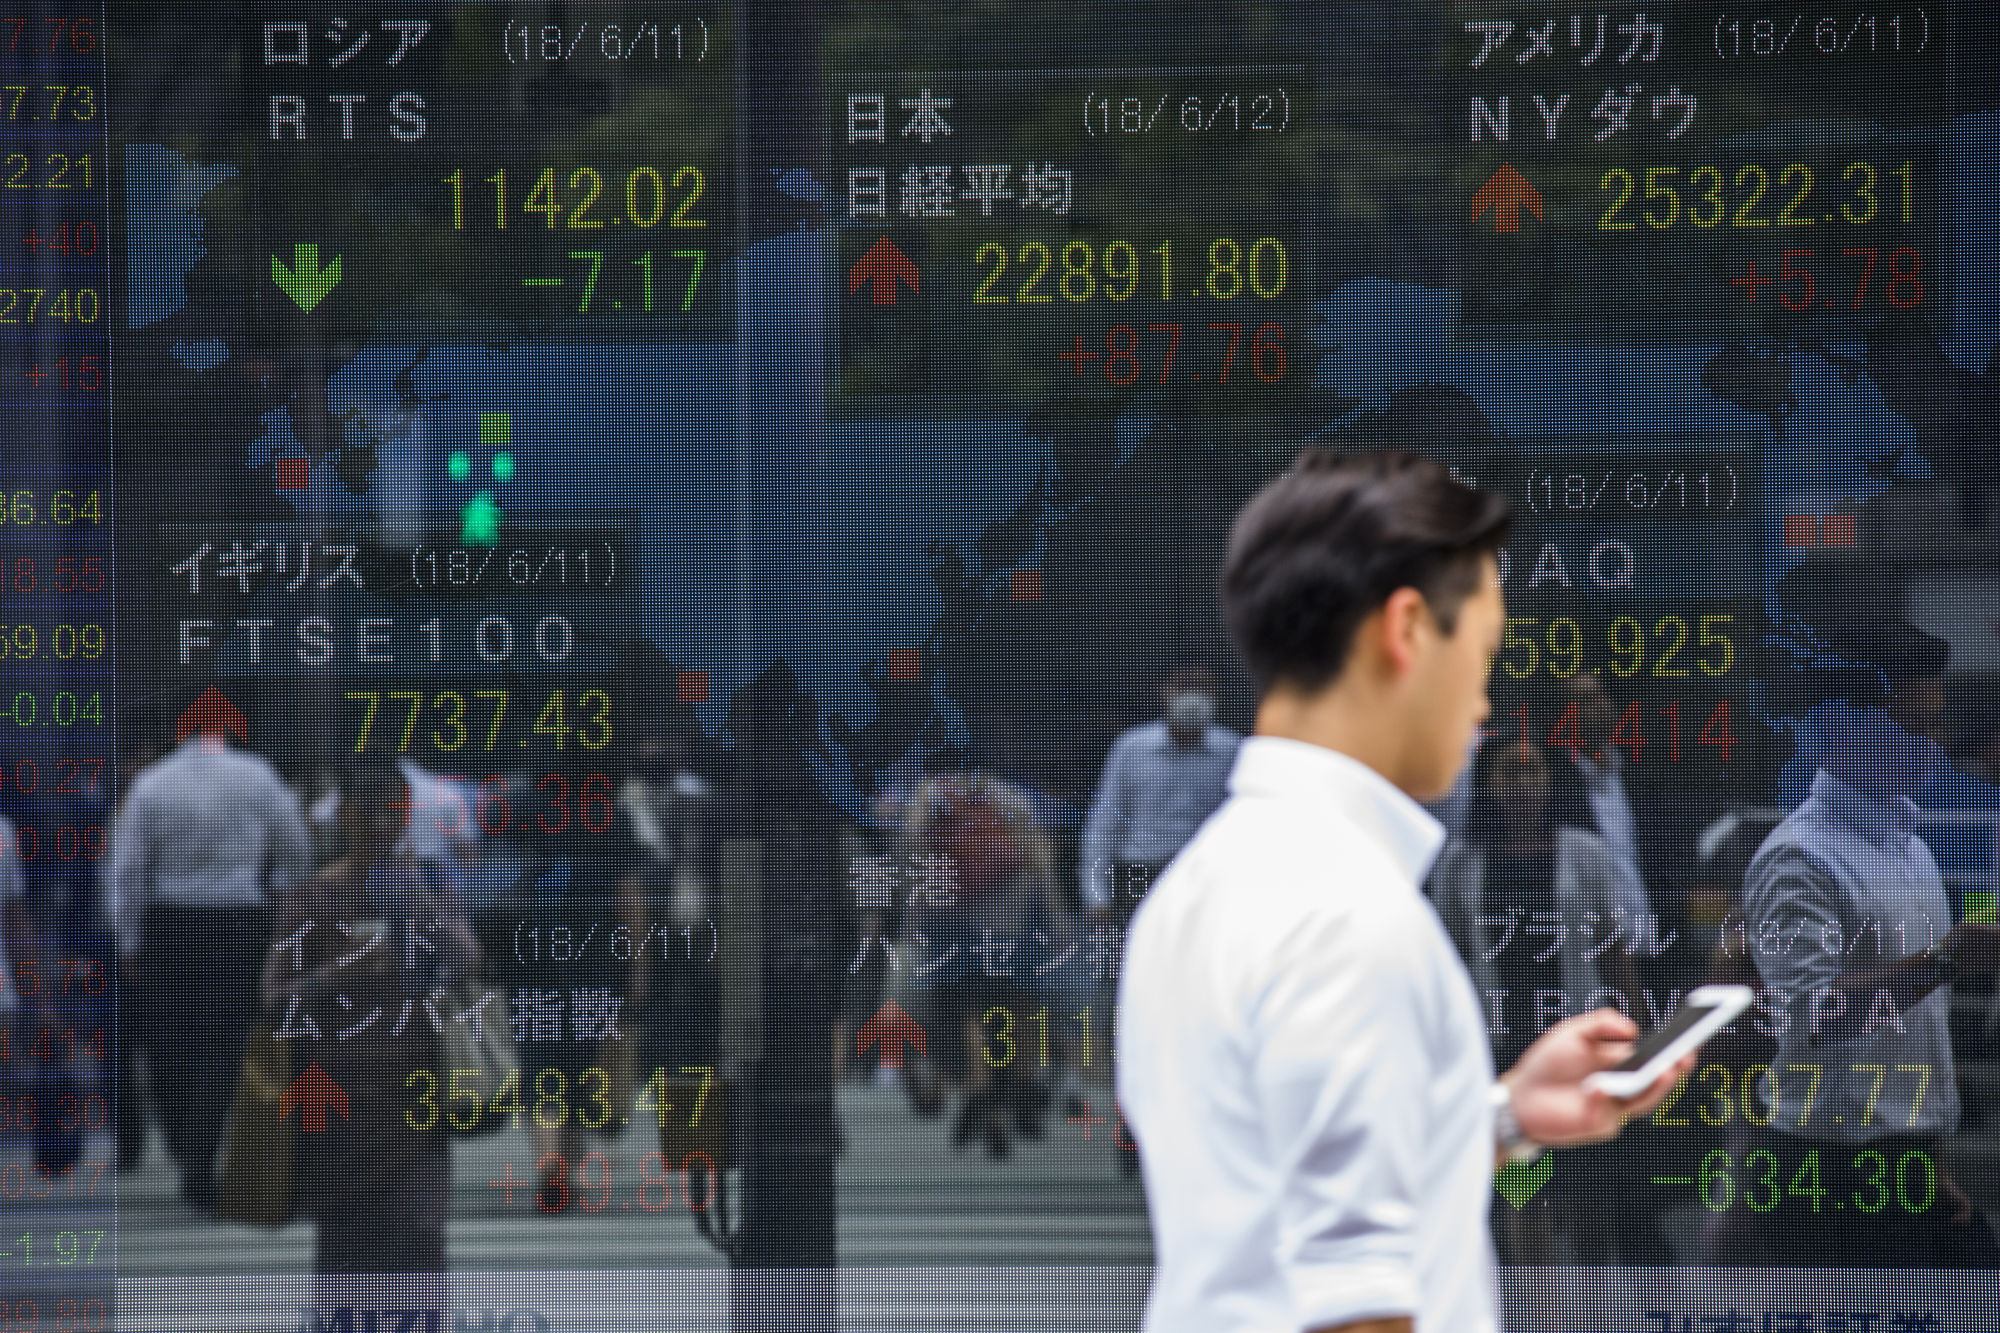 bloomberg.com - Andreea Papuc - Asia Stocks Rise After Fed; Dollar Holds Advance: Markets Wrap